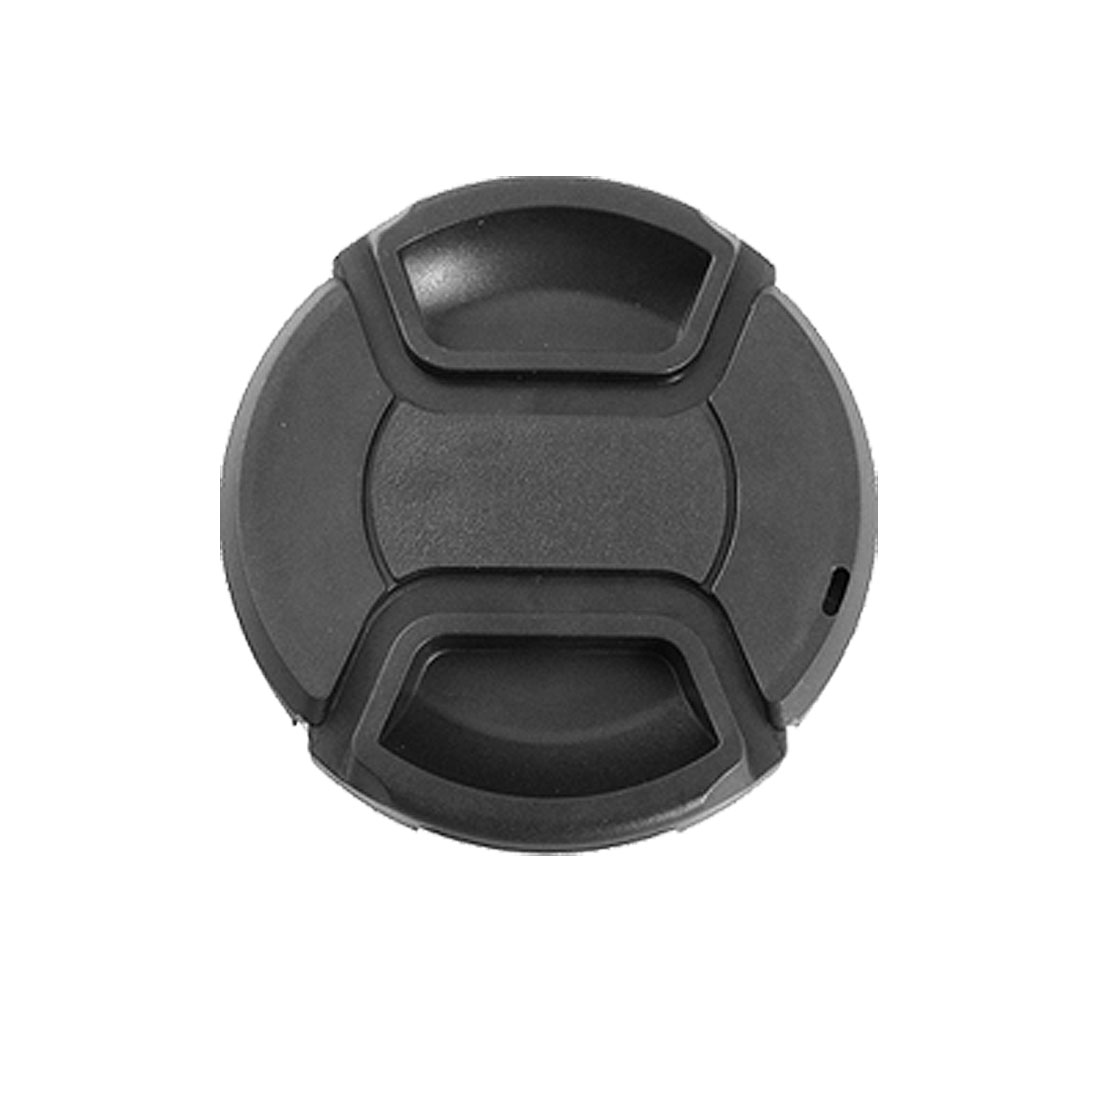 Black 62mm Center Pinch Design Front Lens Cap Cover